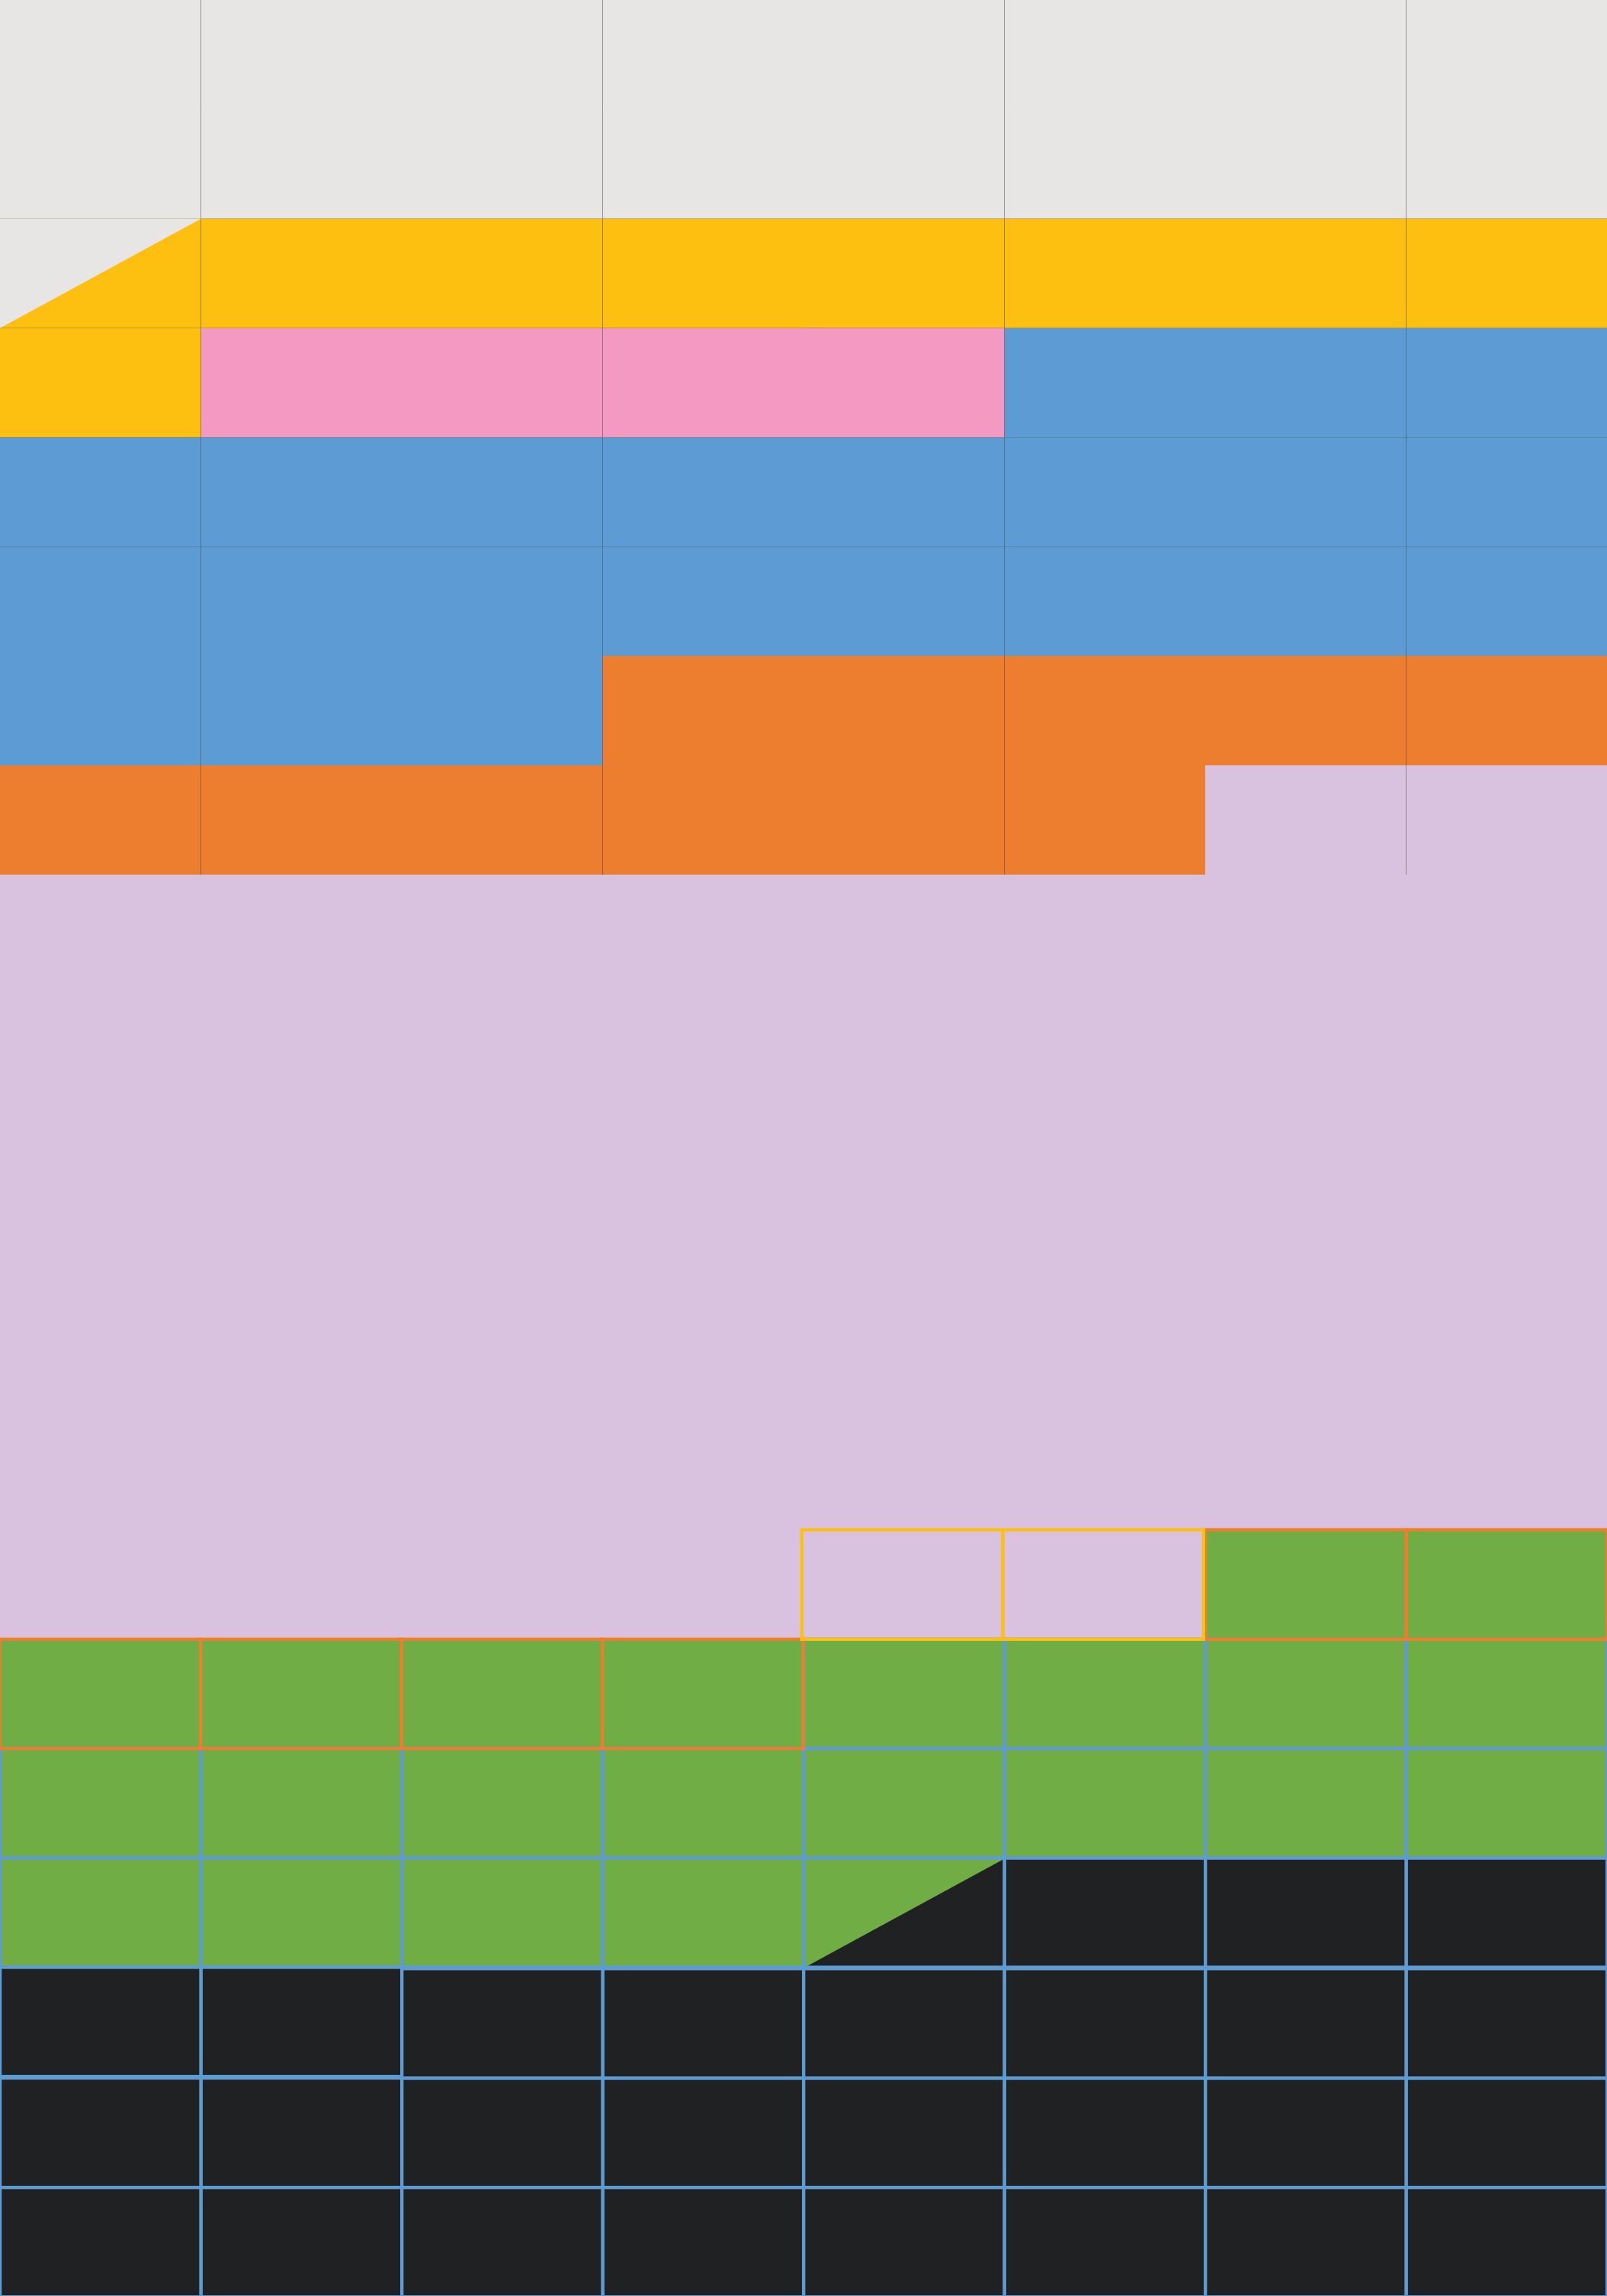 Schedule-Abstraction_4.143